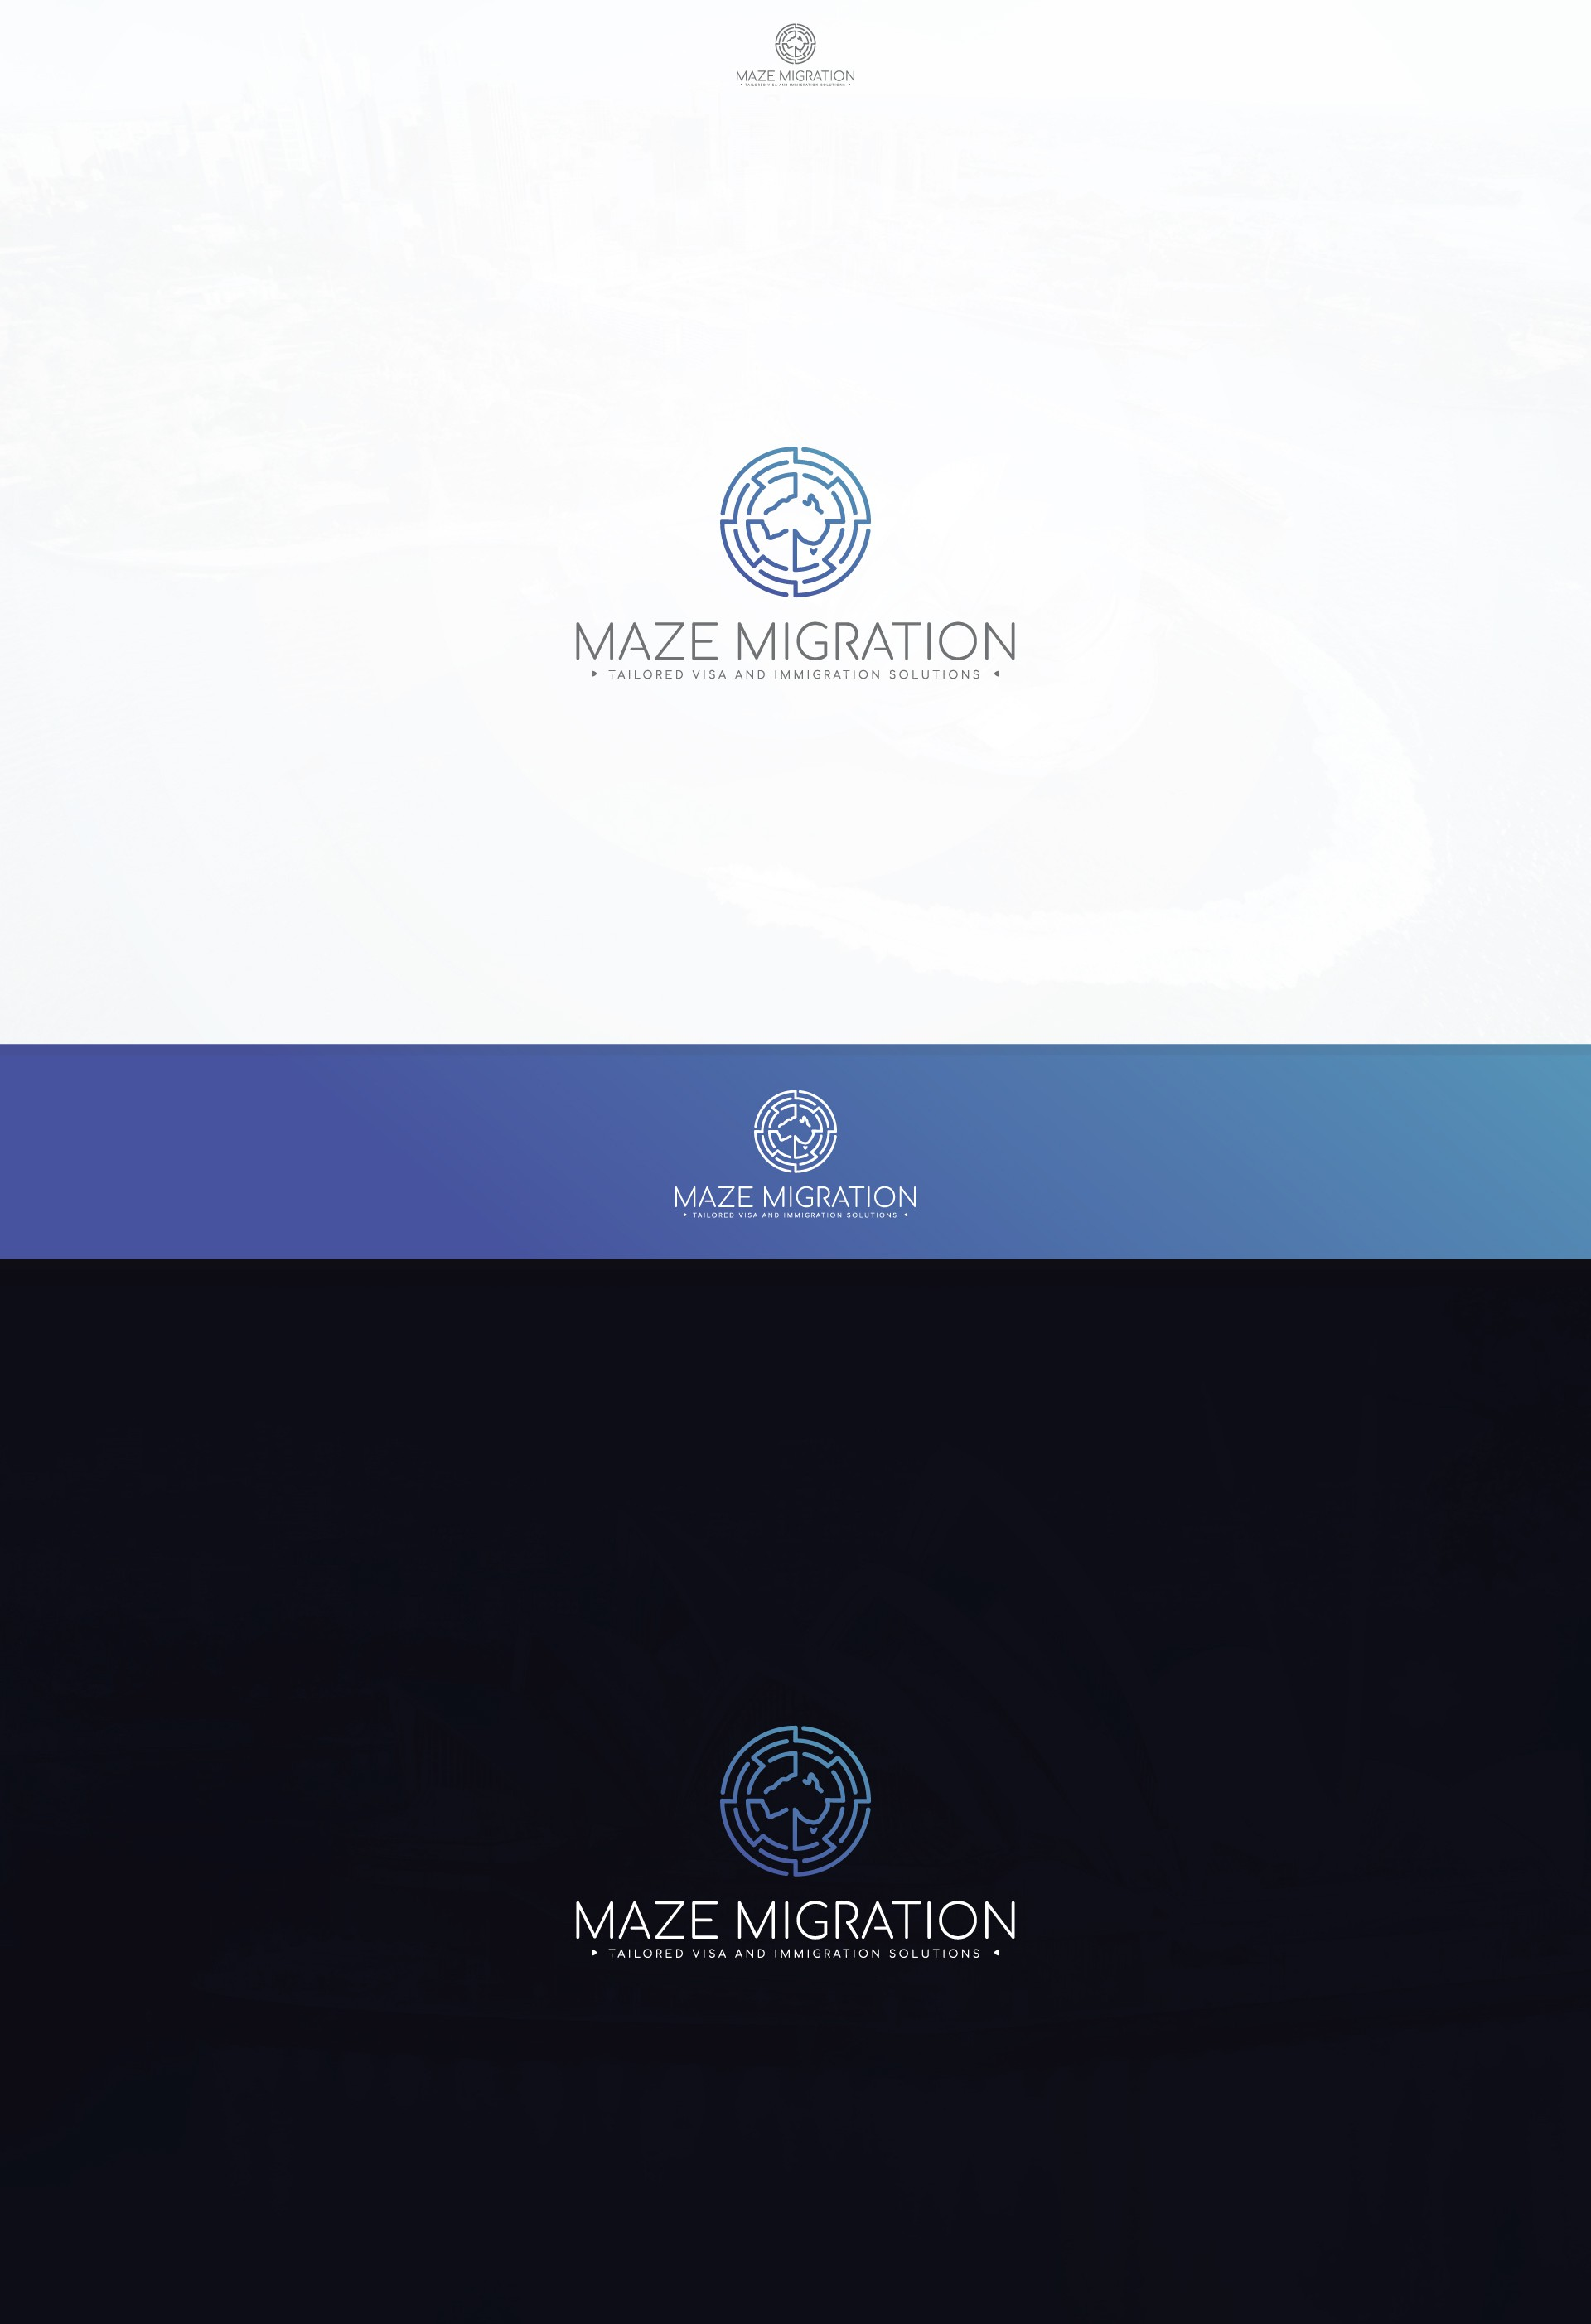 Unique logo required for Maze Migration business